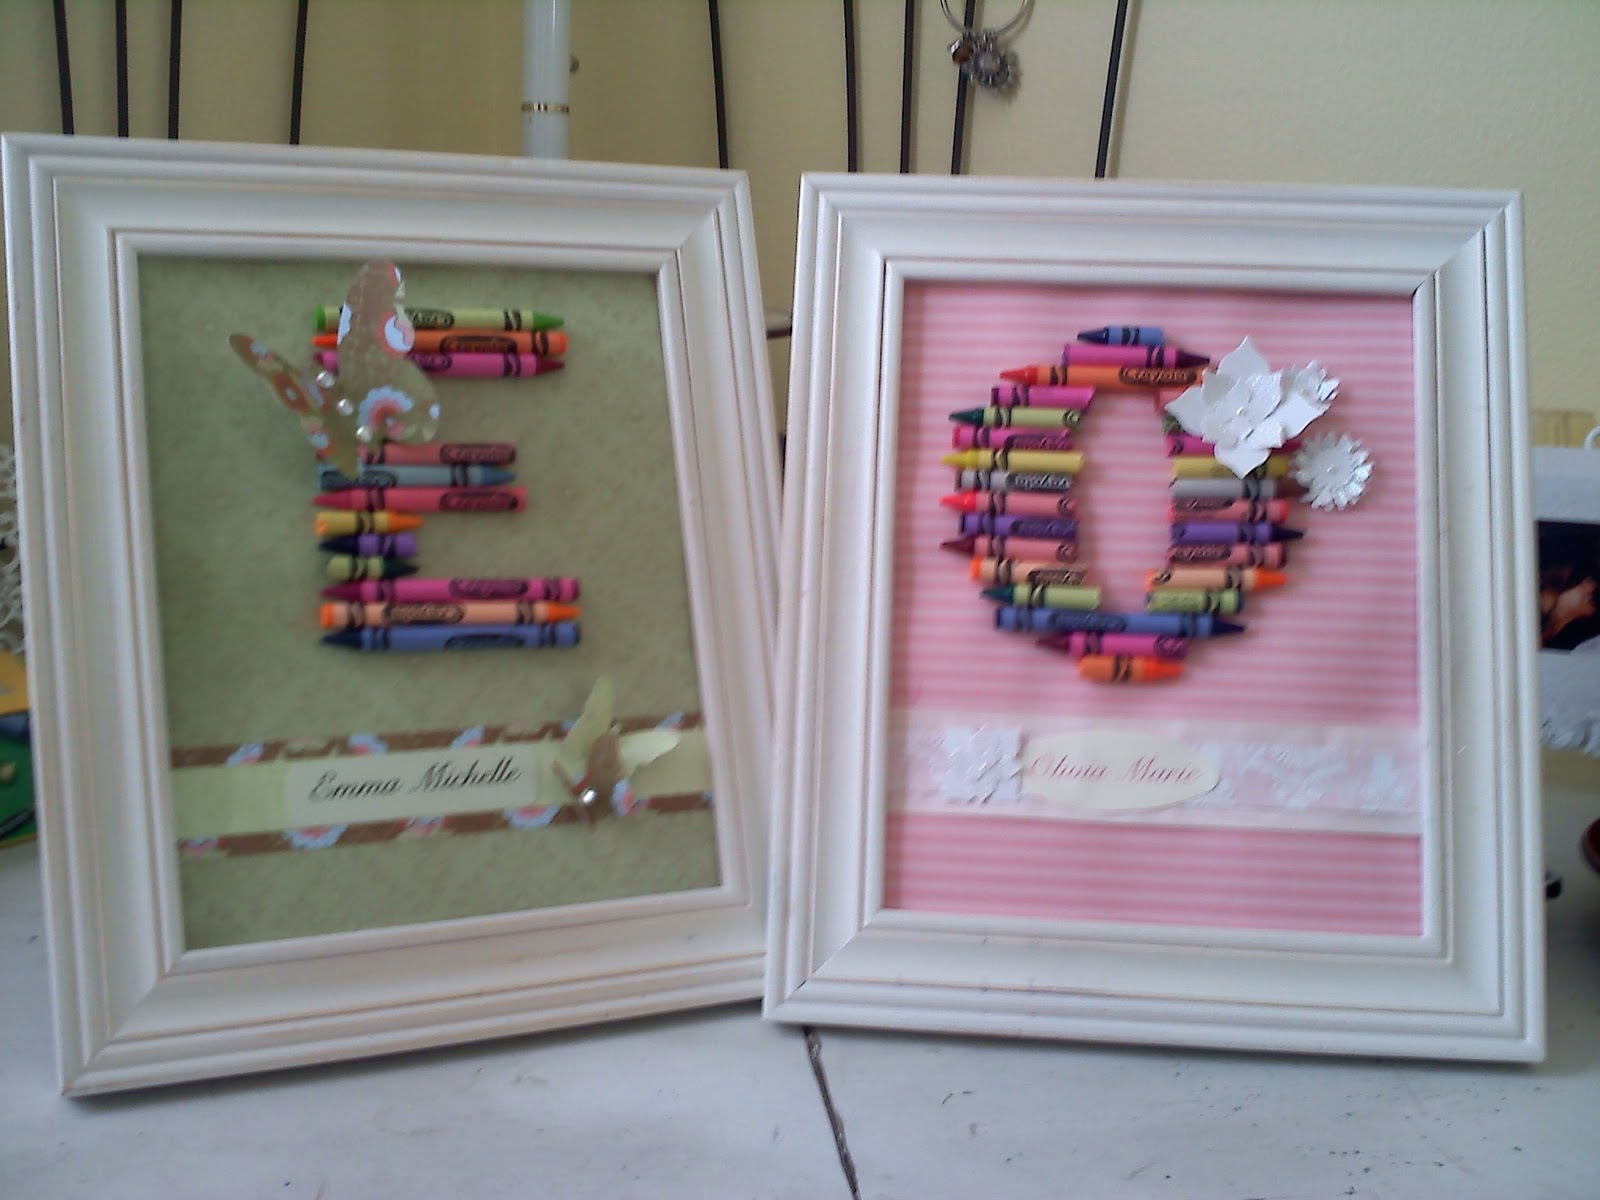 lastly take the glass out of the front of the frame and put your 3 d crayon letter art work into the frame heres a photo of both the ones i made